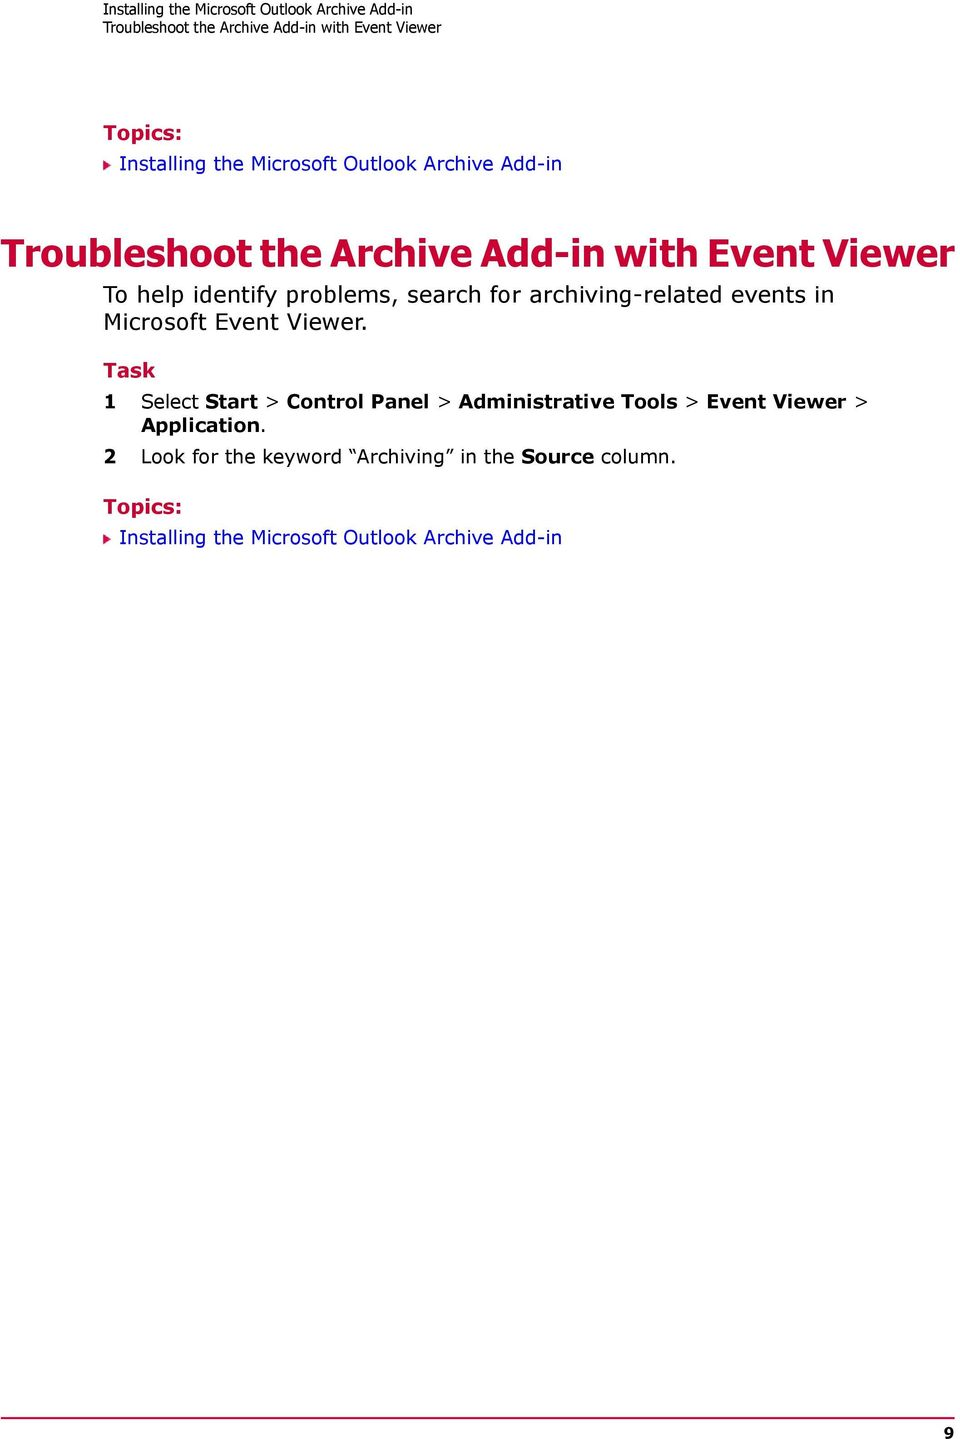 for archiving-related events in Microsoft Event Viewer.